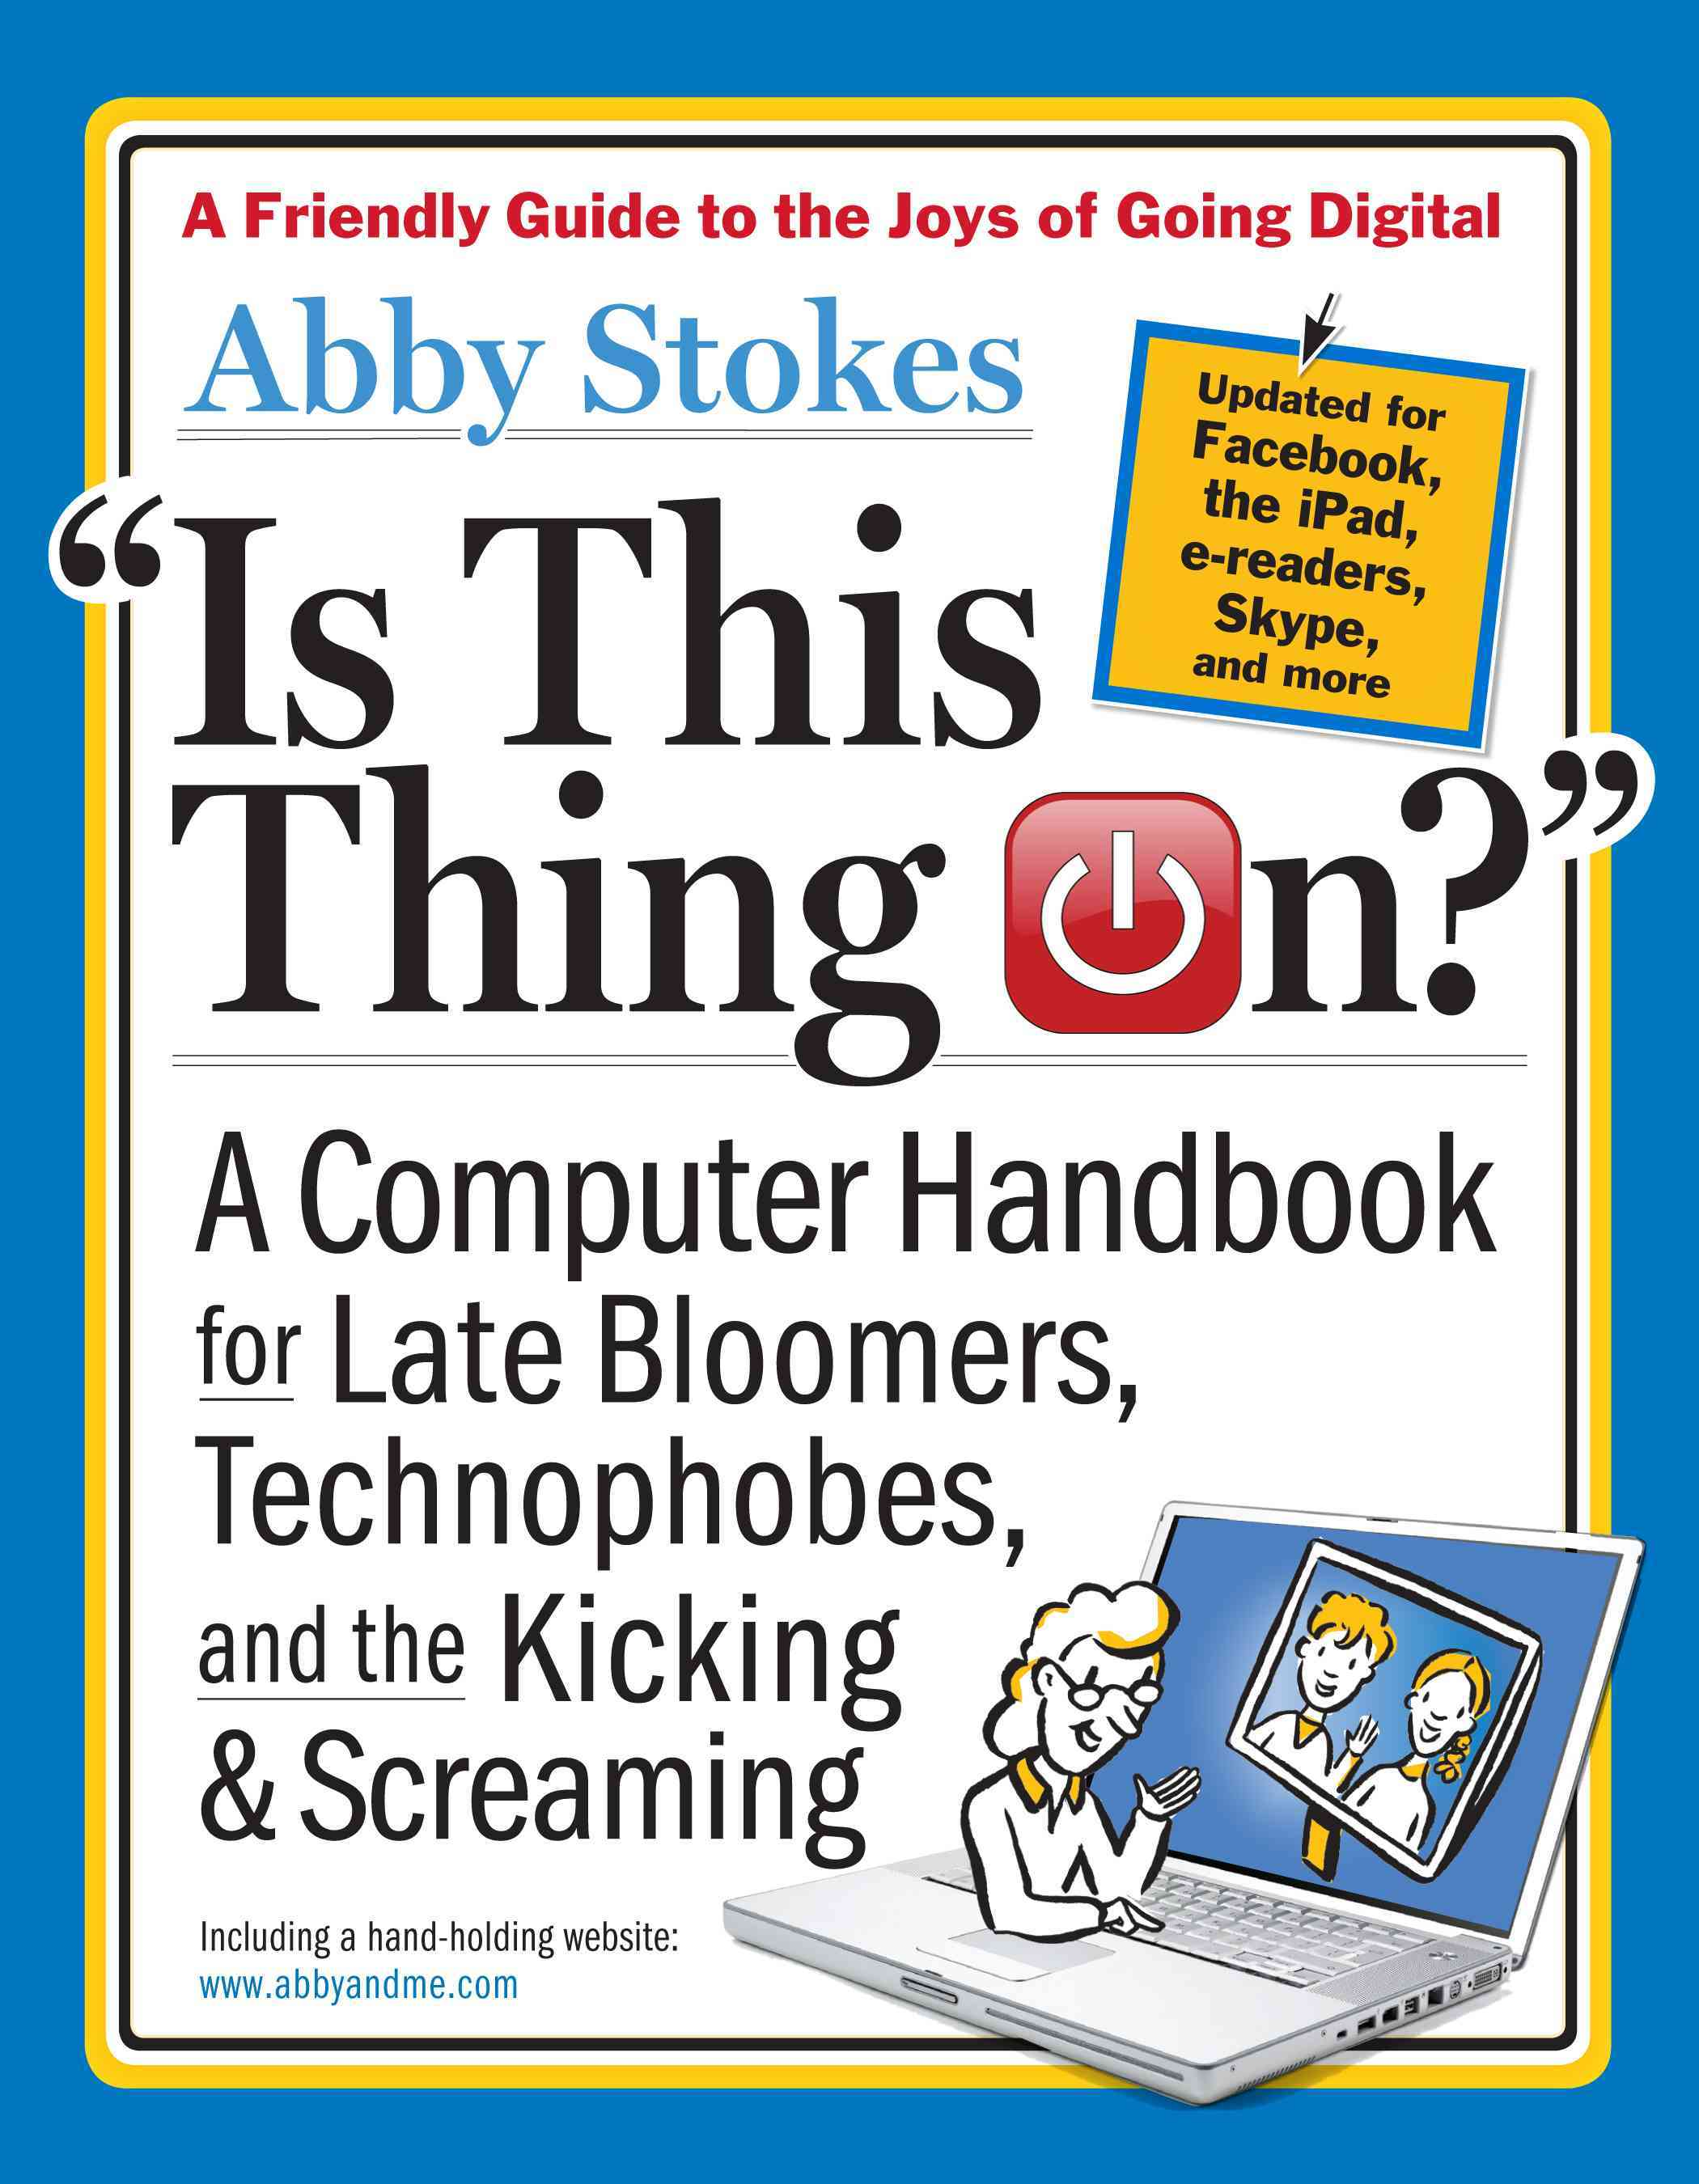 Is This Thing On?: A Computer Handbook for Late Bloomers, Technophobes, and the Kicking & Screaming (Paperback)